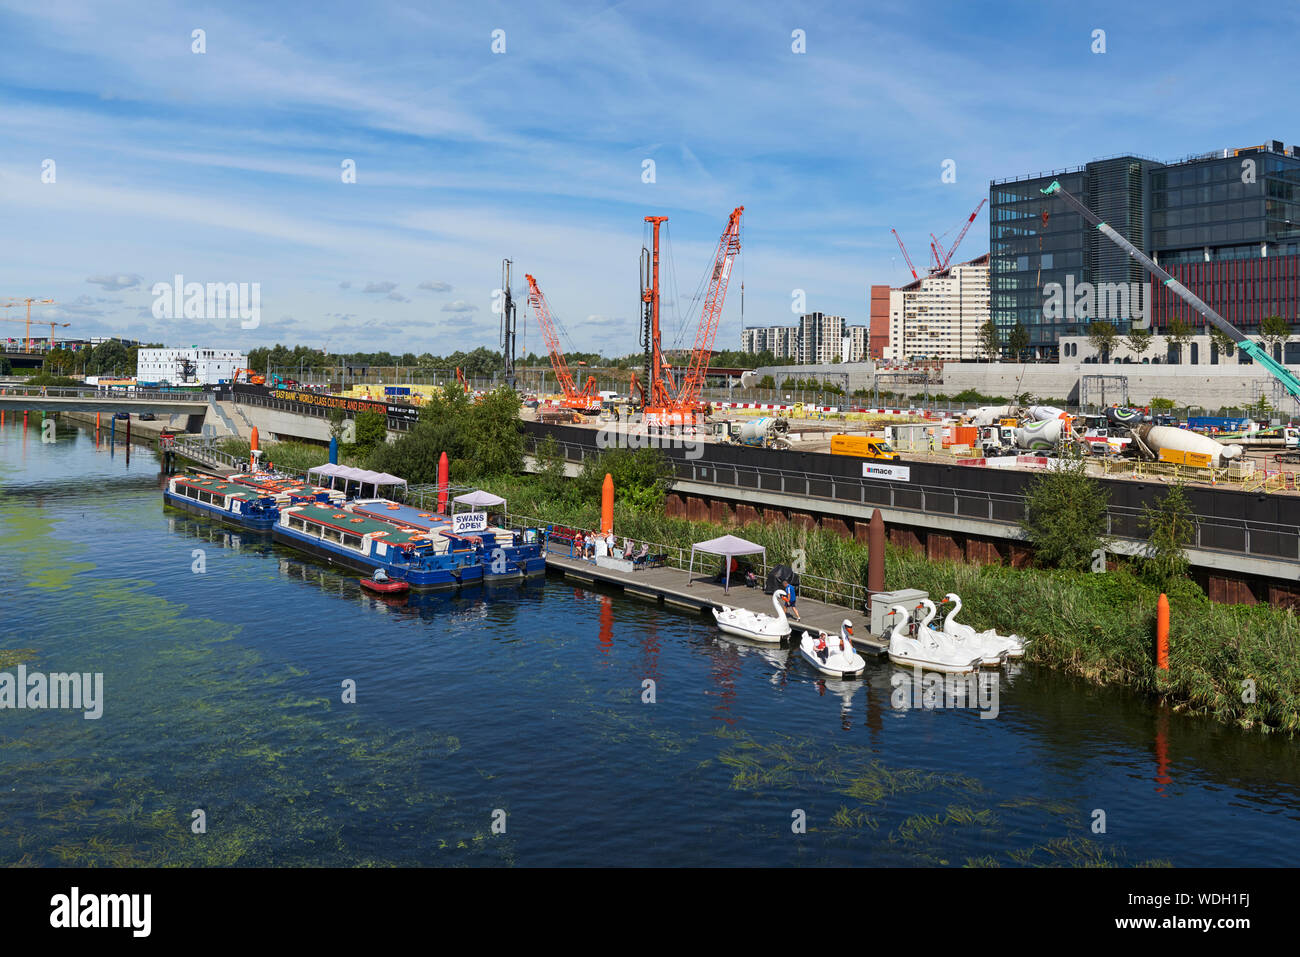 Building works by the Waterworks River, with boats, in the Queen Elizabeth Olympic Park at Stratford, East London UK Stock Photo